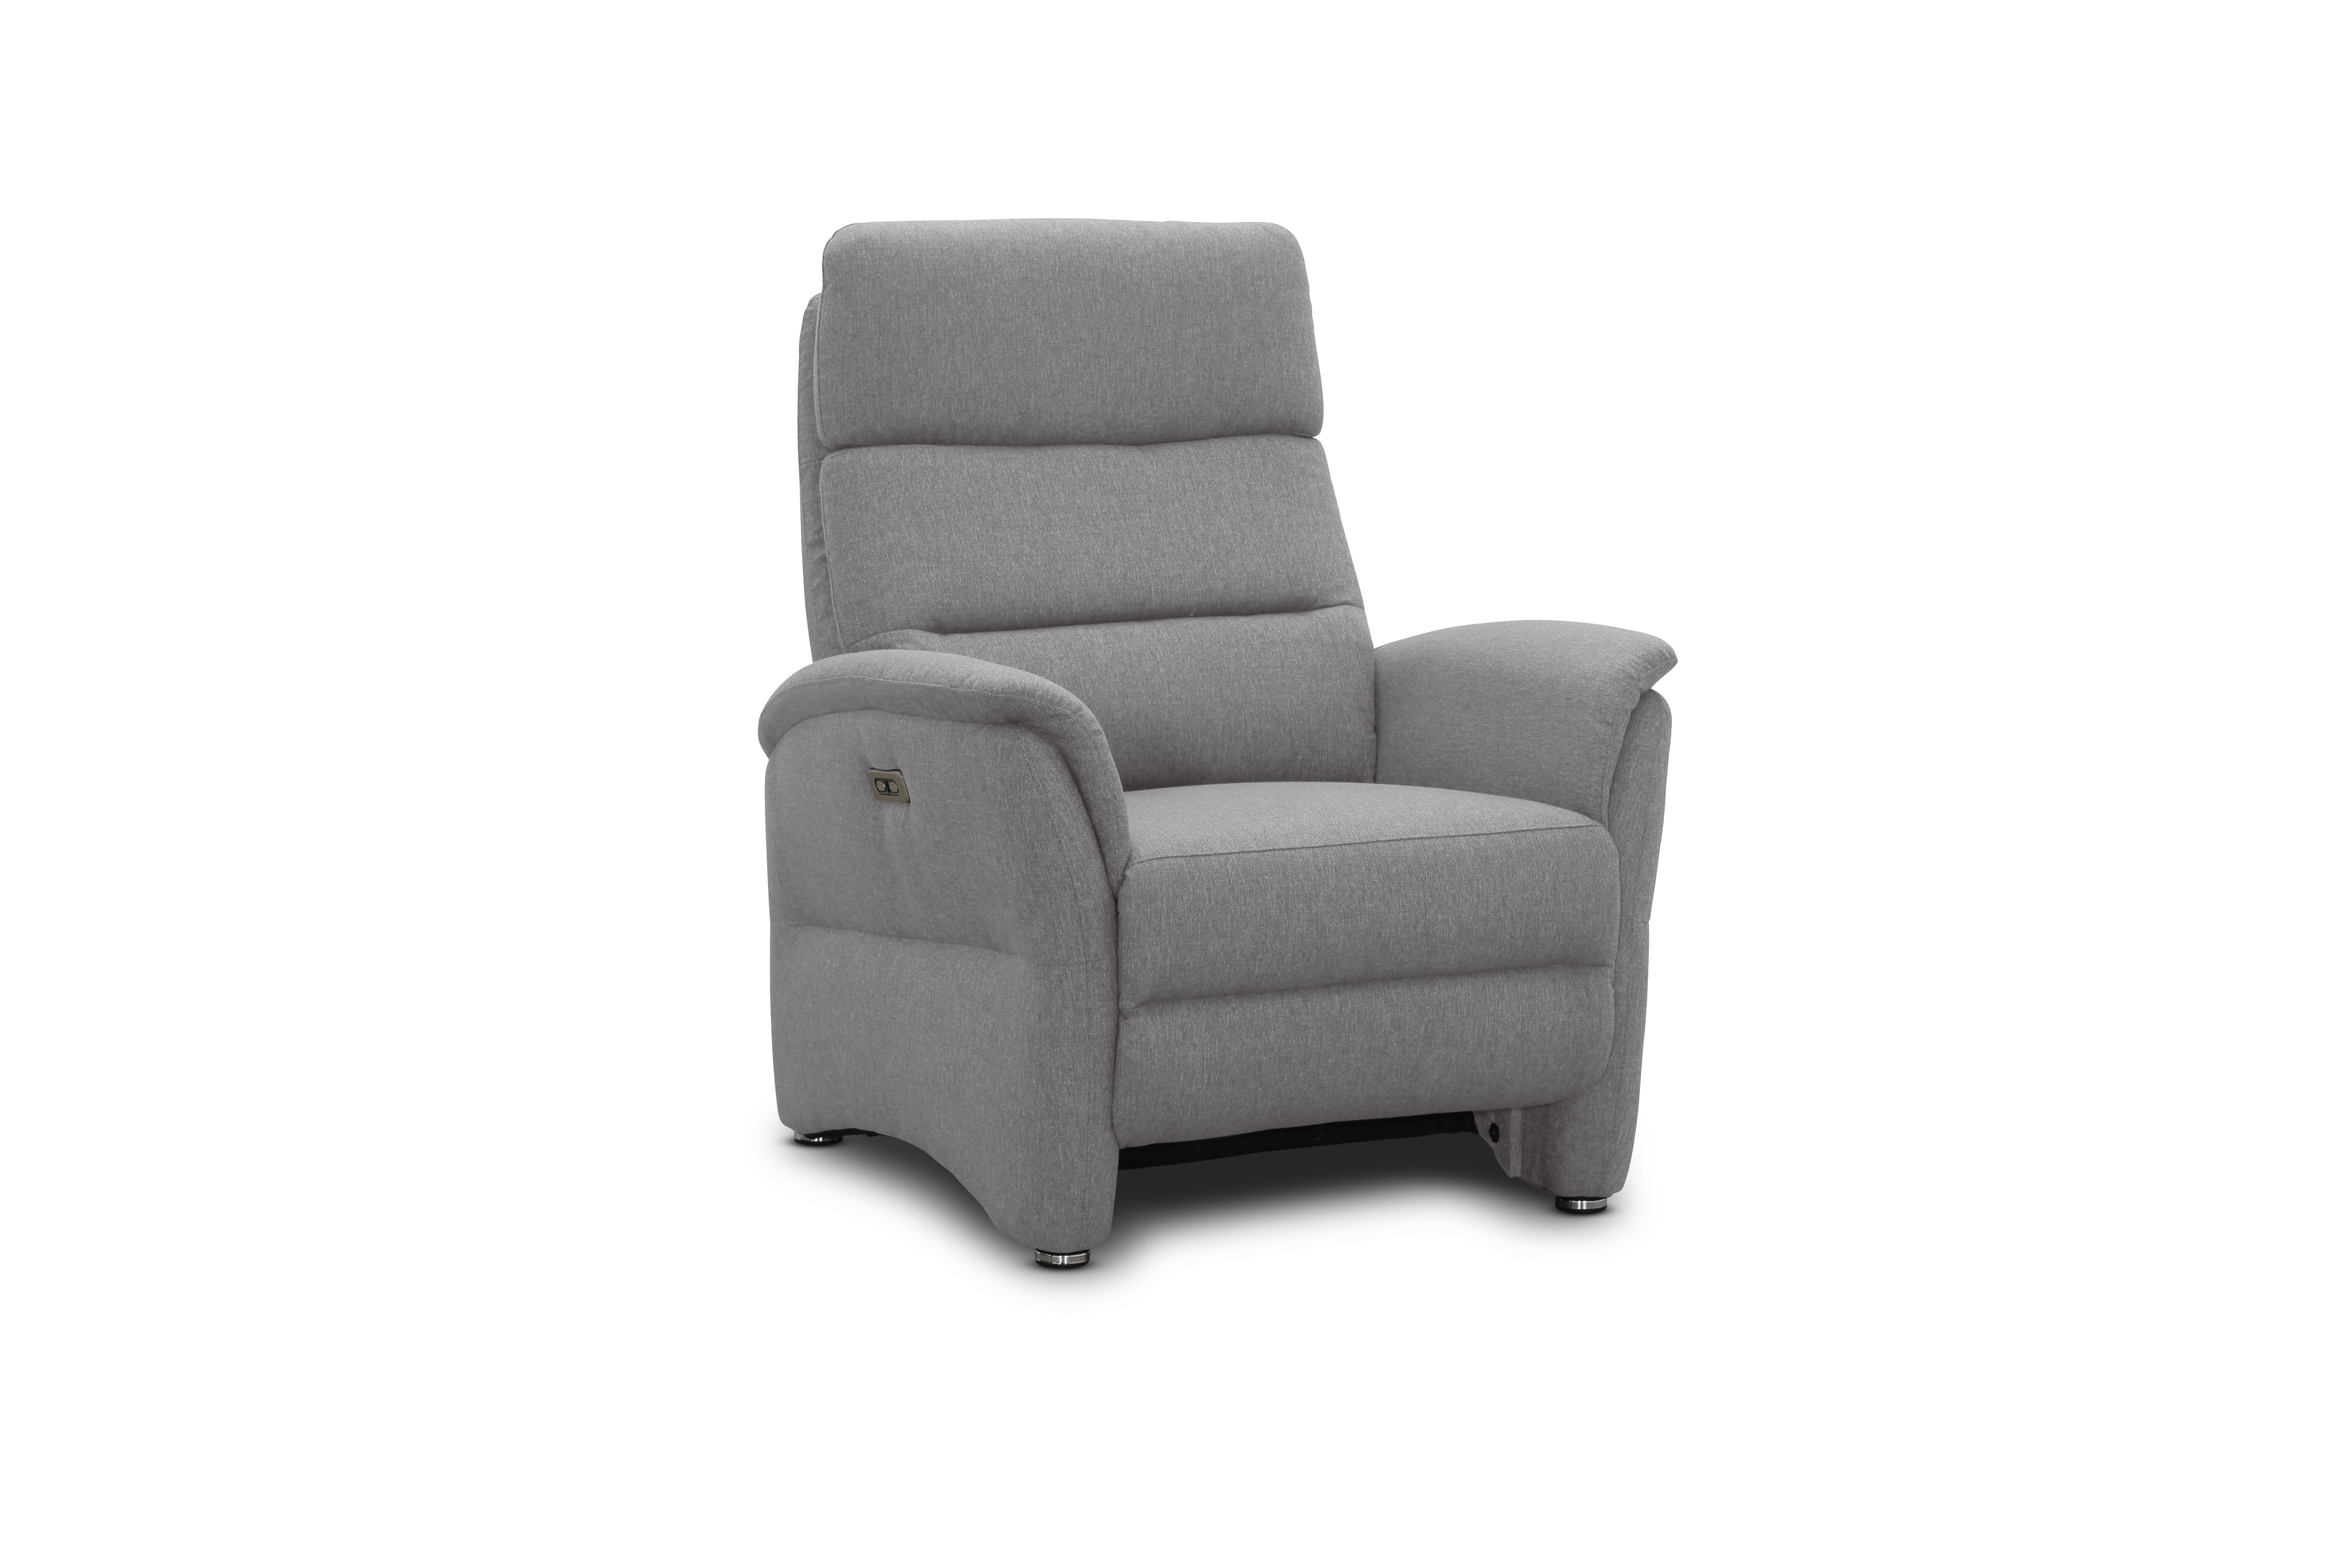 Washington Recliner fåtölj